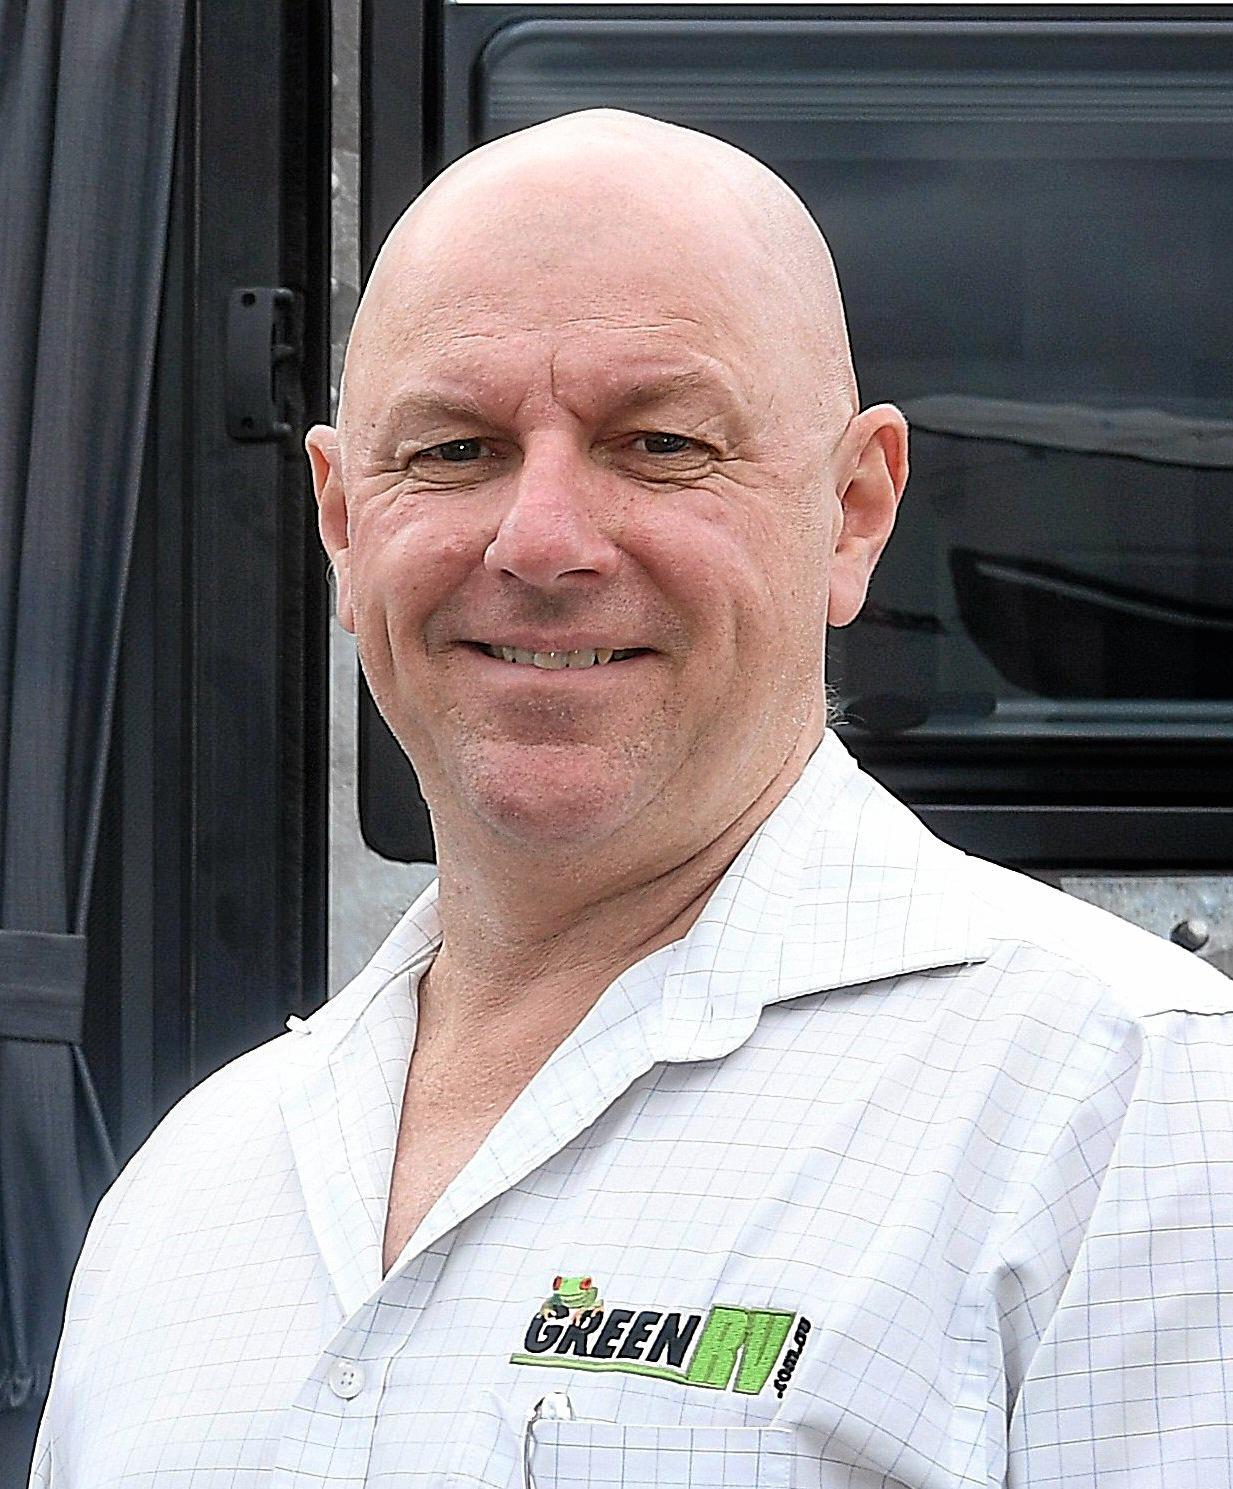 Carl Green from Green RV in Gympie has built his empire from a small car-yard to a multi-million dollar caravan and motorhome dynasty.